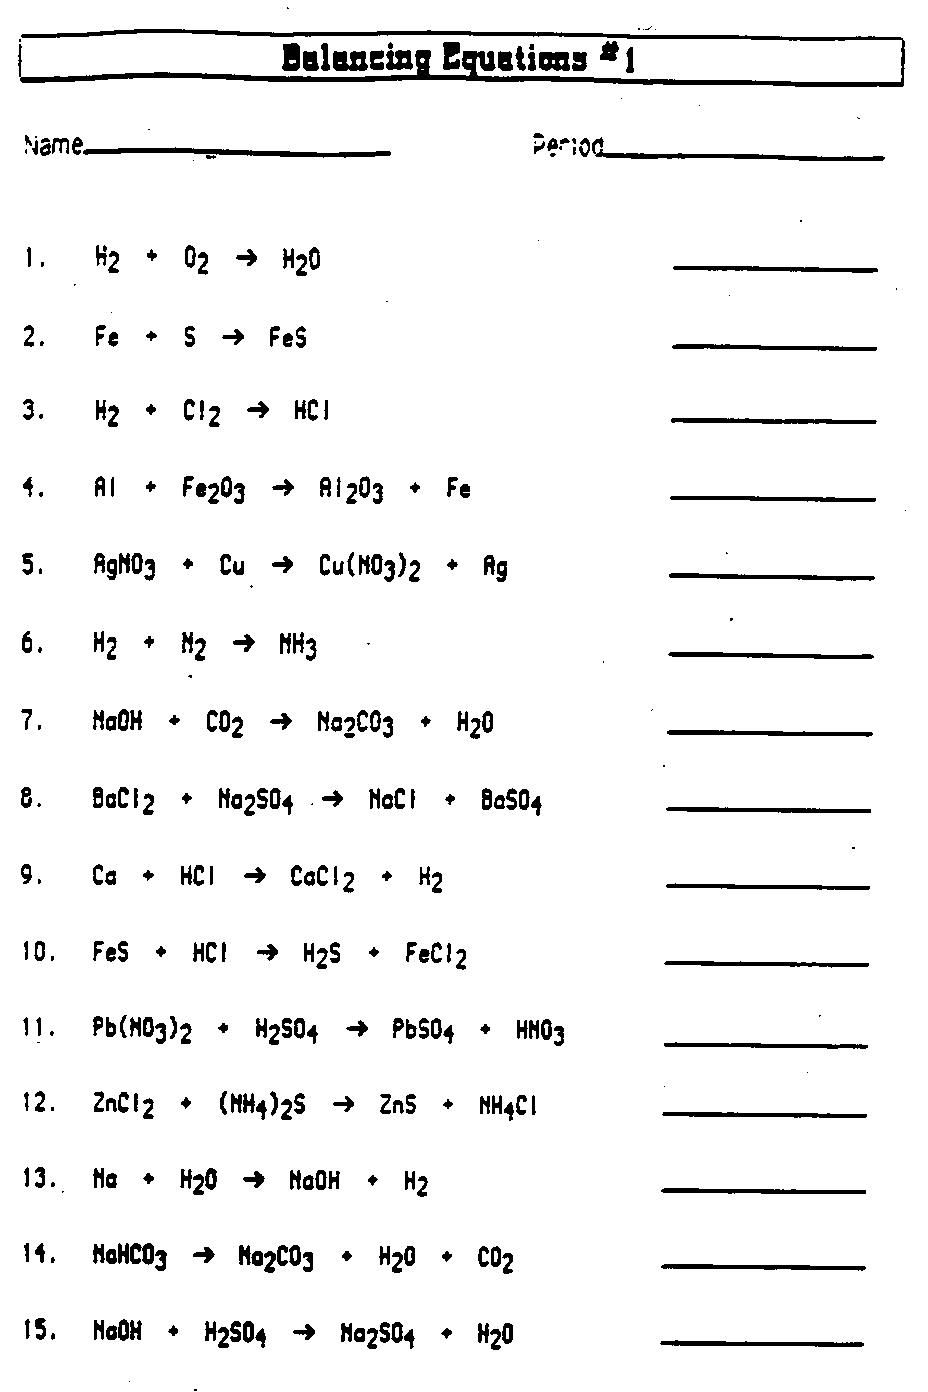 balancing equations worksheet – Balancing Chemical Equations Worksheet 3